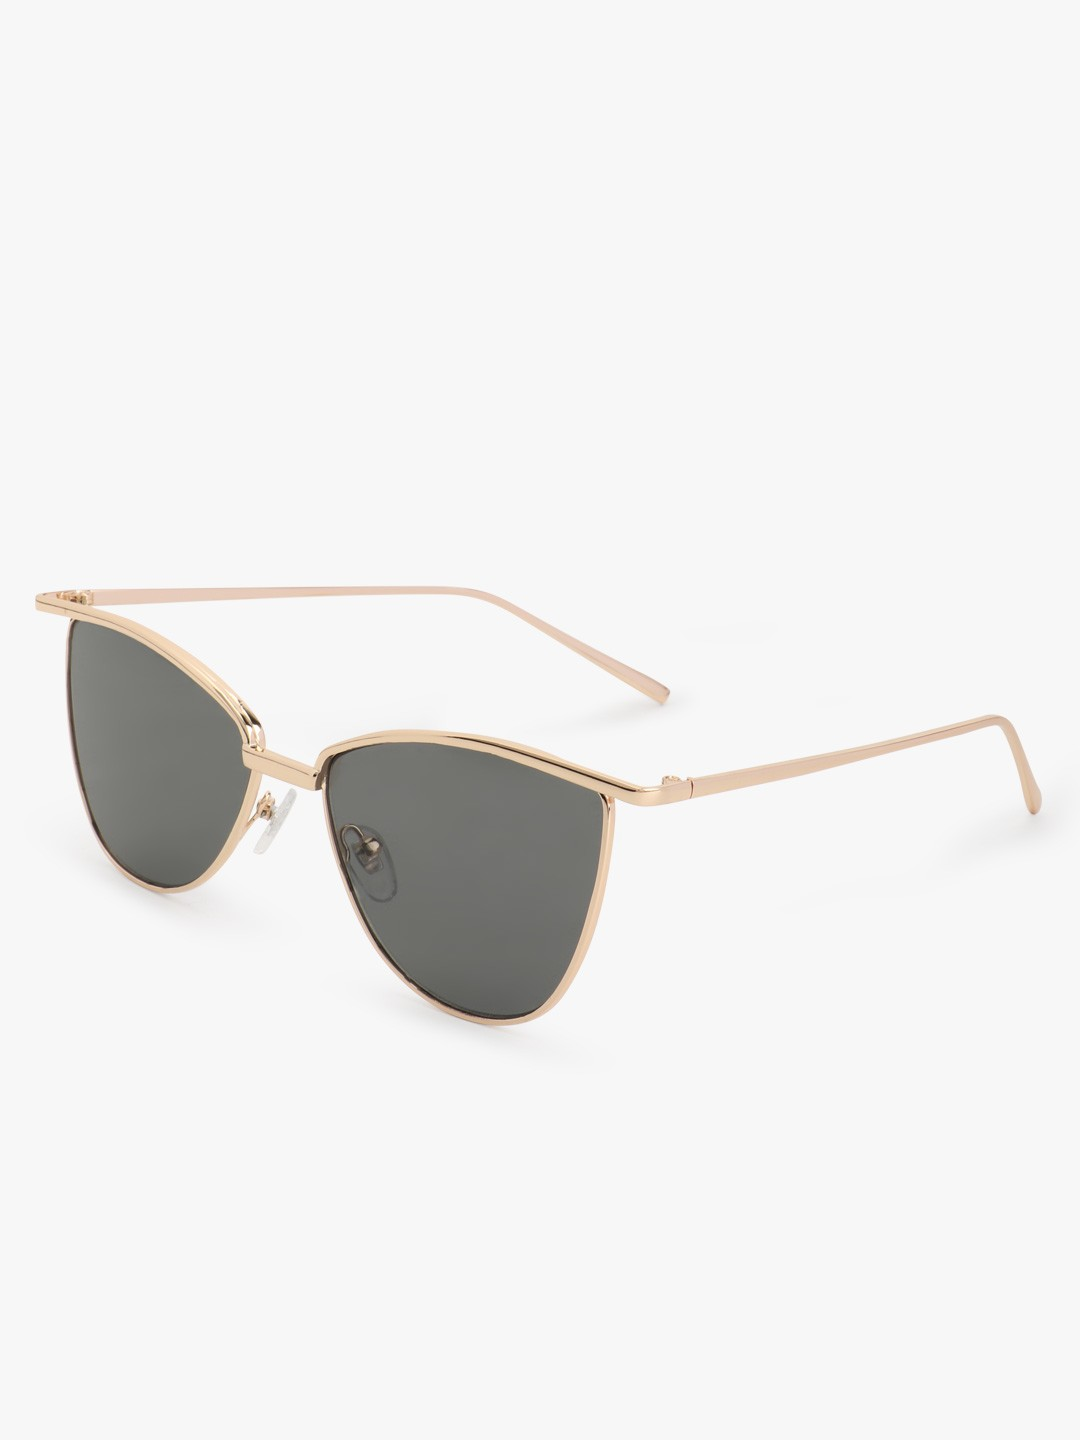 Sneak-a-Peek Black Gold Rimmed Cateye Sunglasses 1